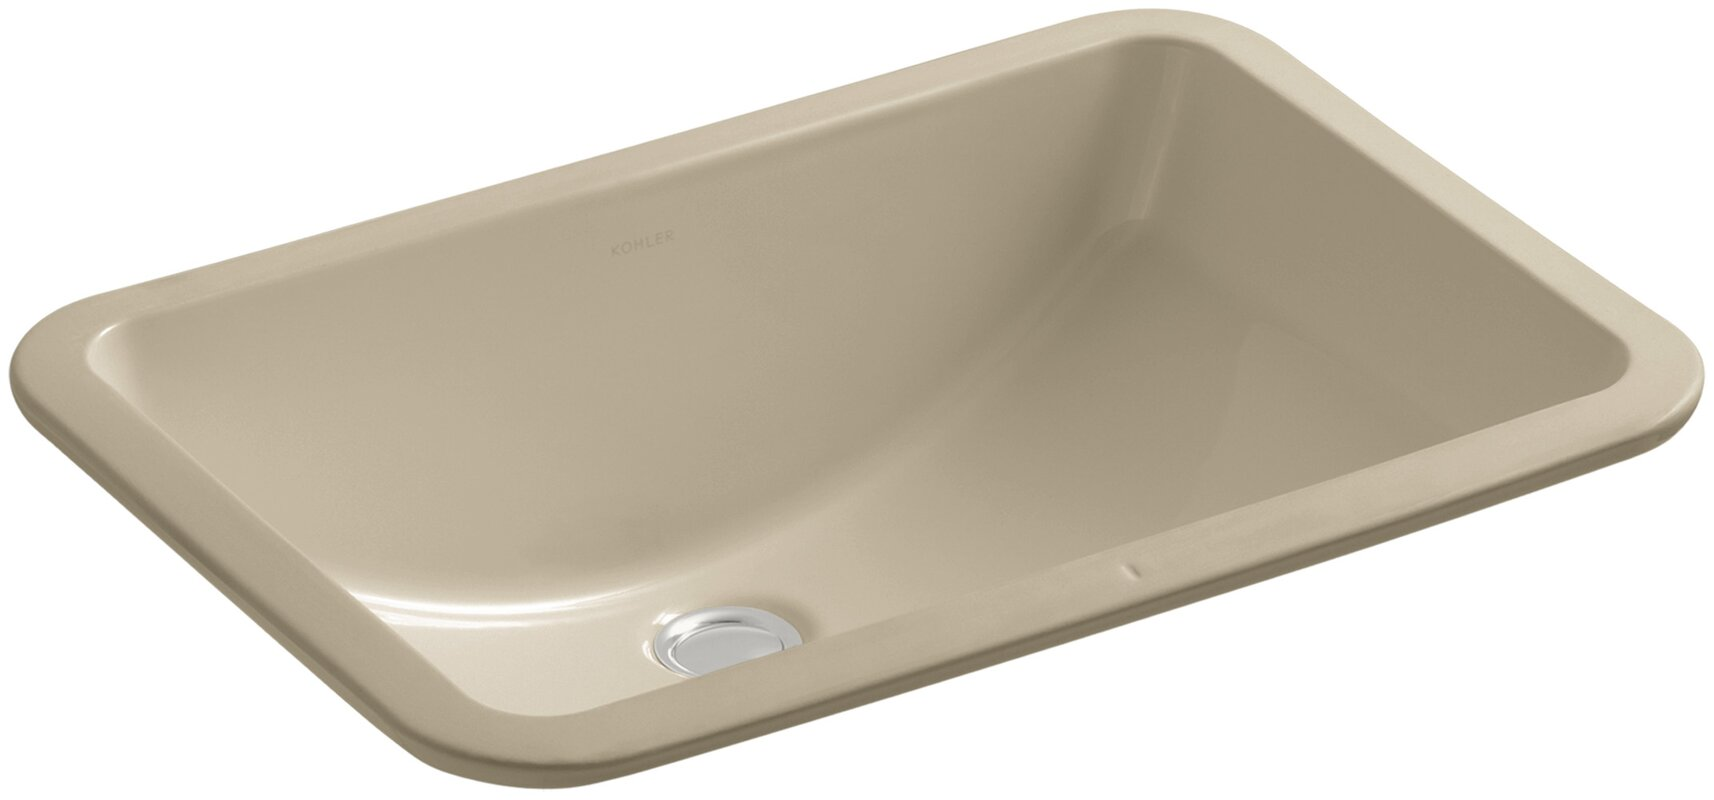 Kohler Ladena Rectangular Undermount Bathroom Sink Reviews